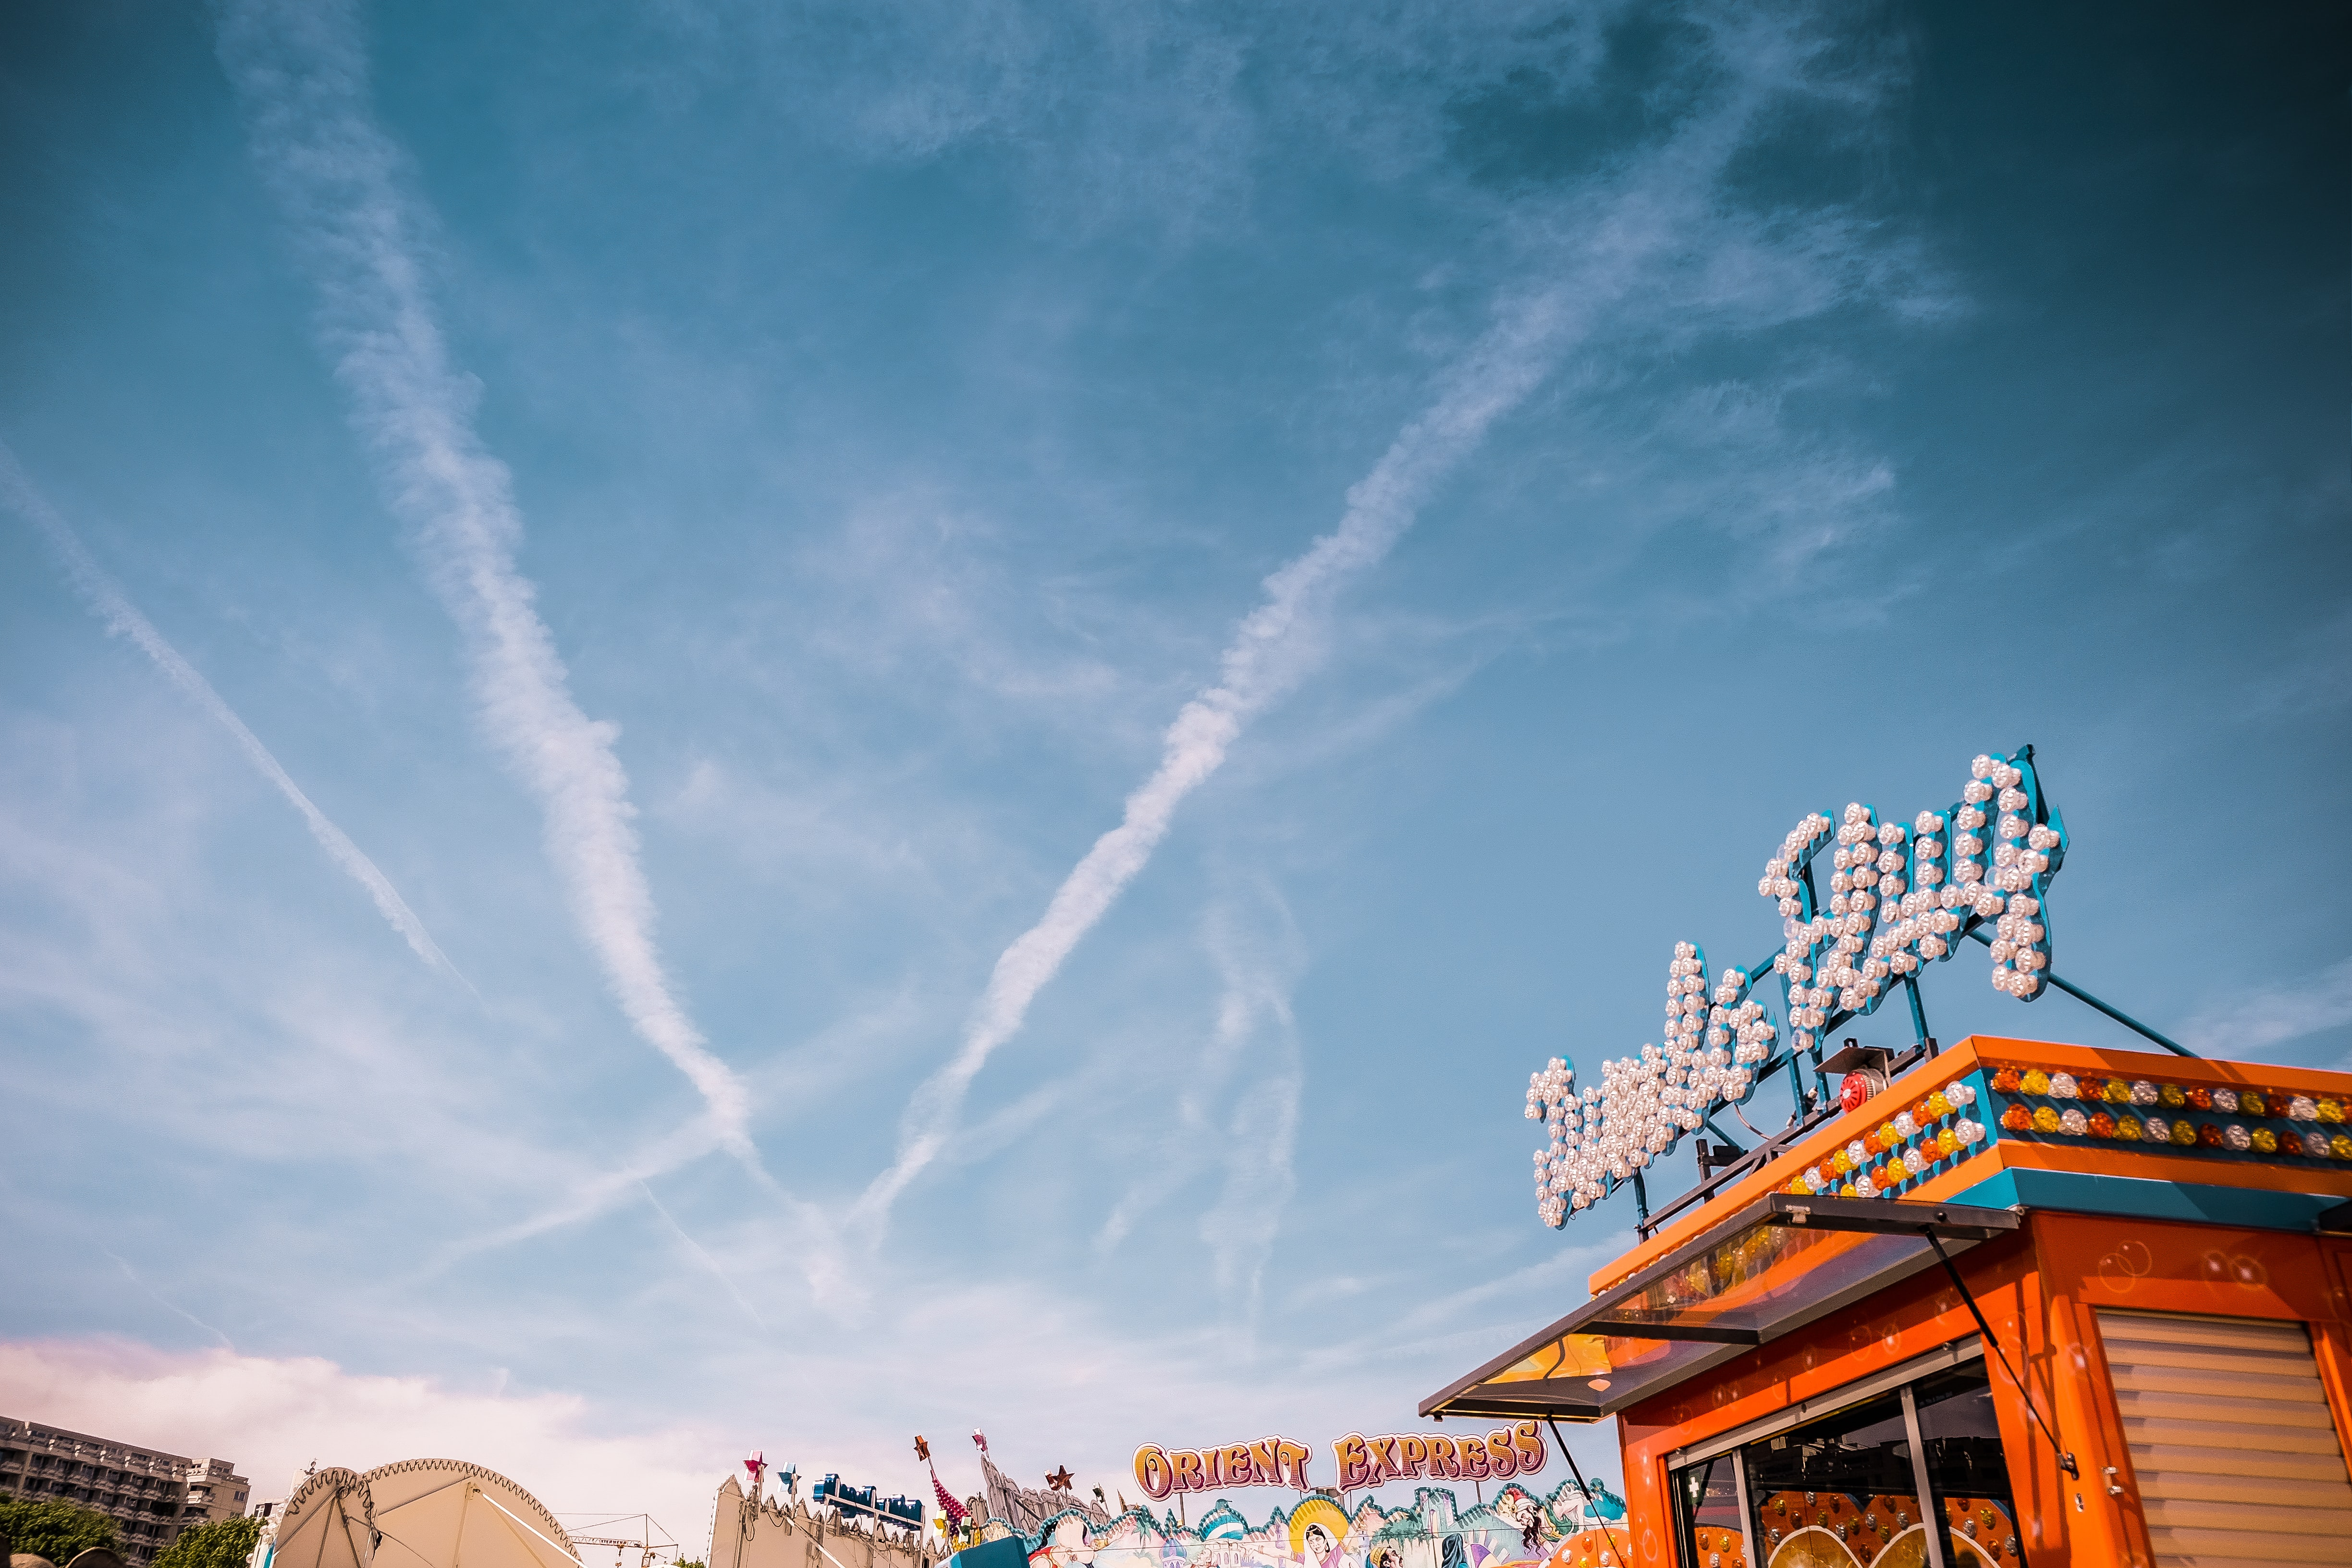 low-angle photography of carnival under blue sky